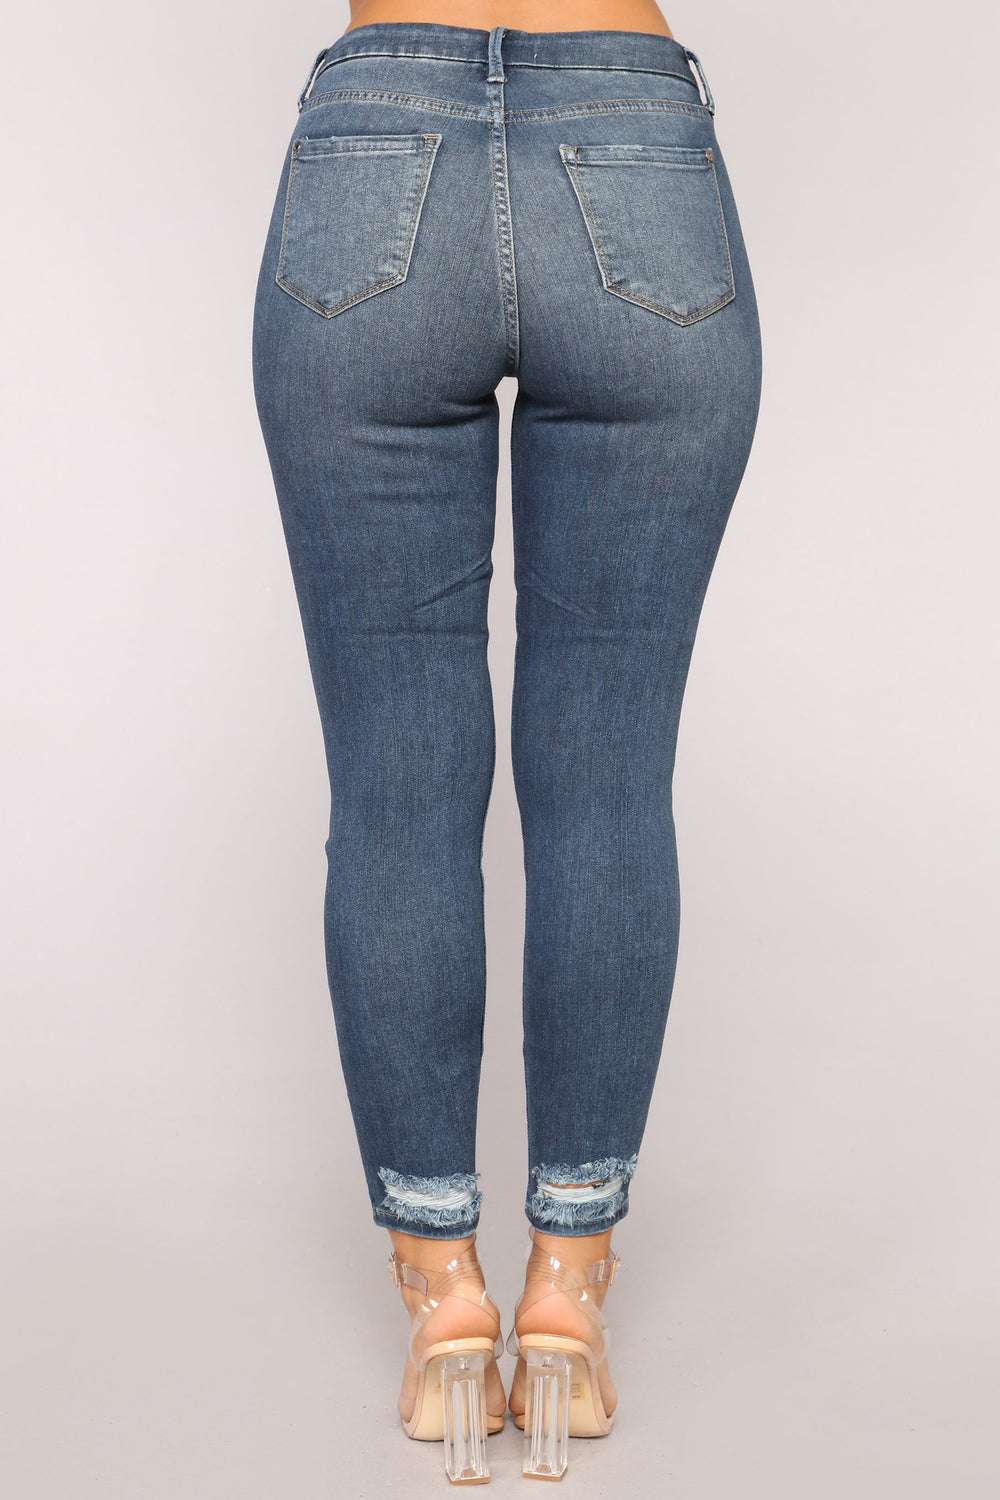 All About Me Skinny Jeans - Dark Denim